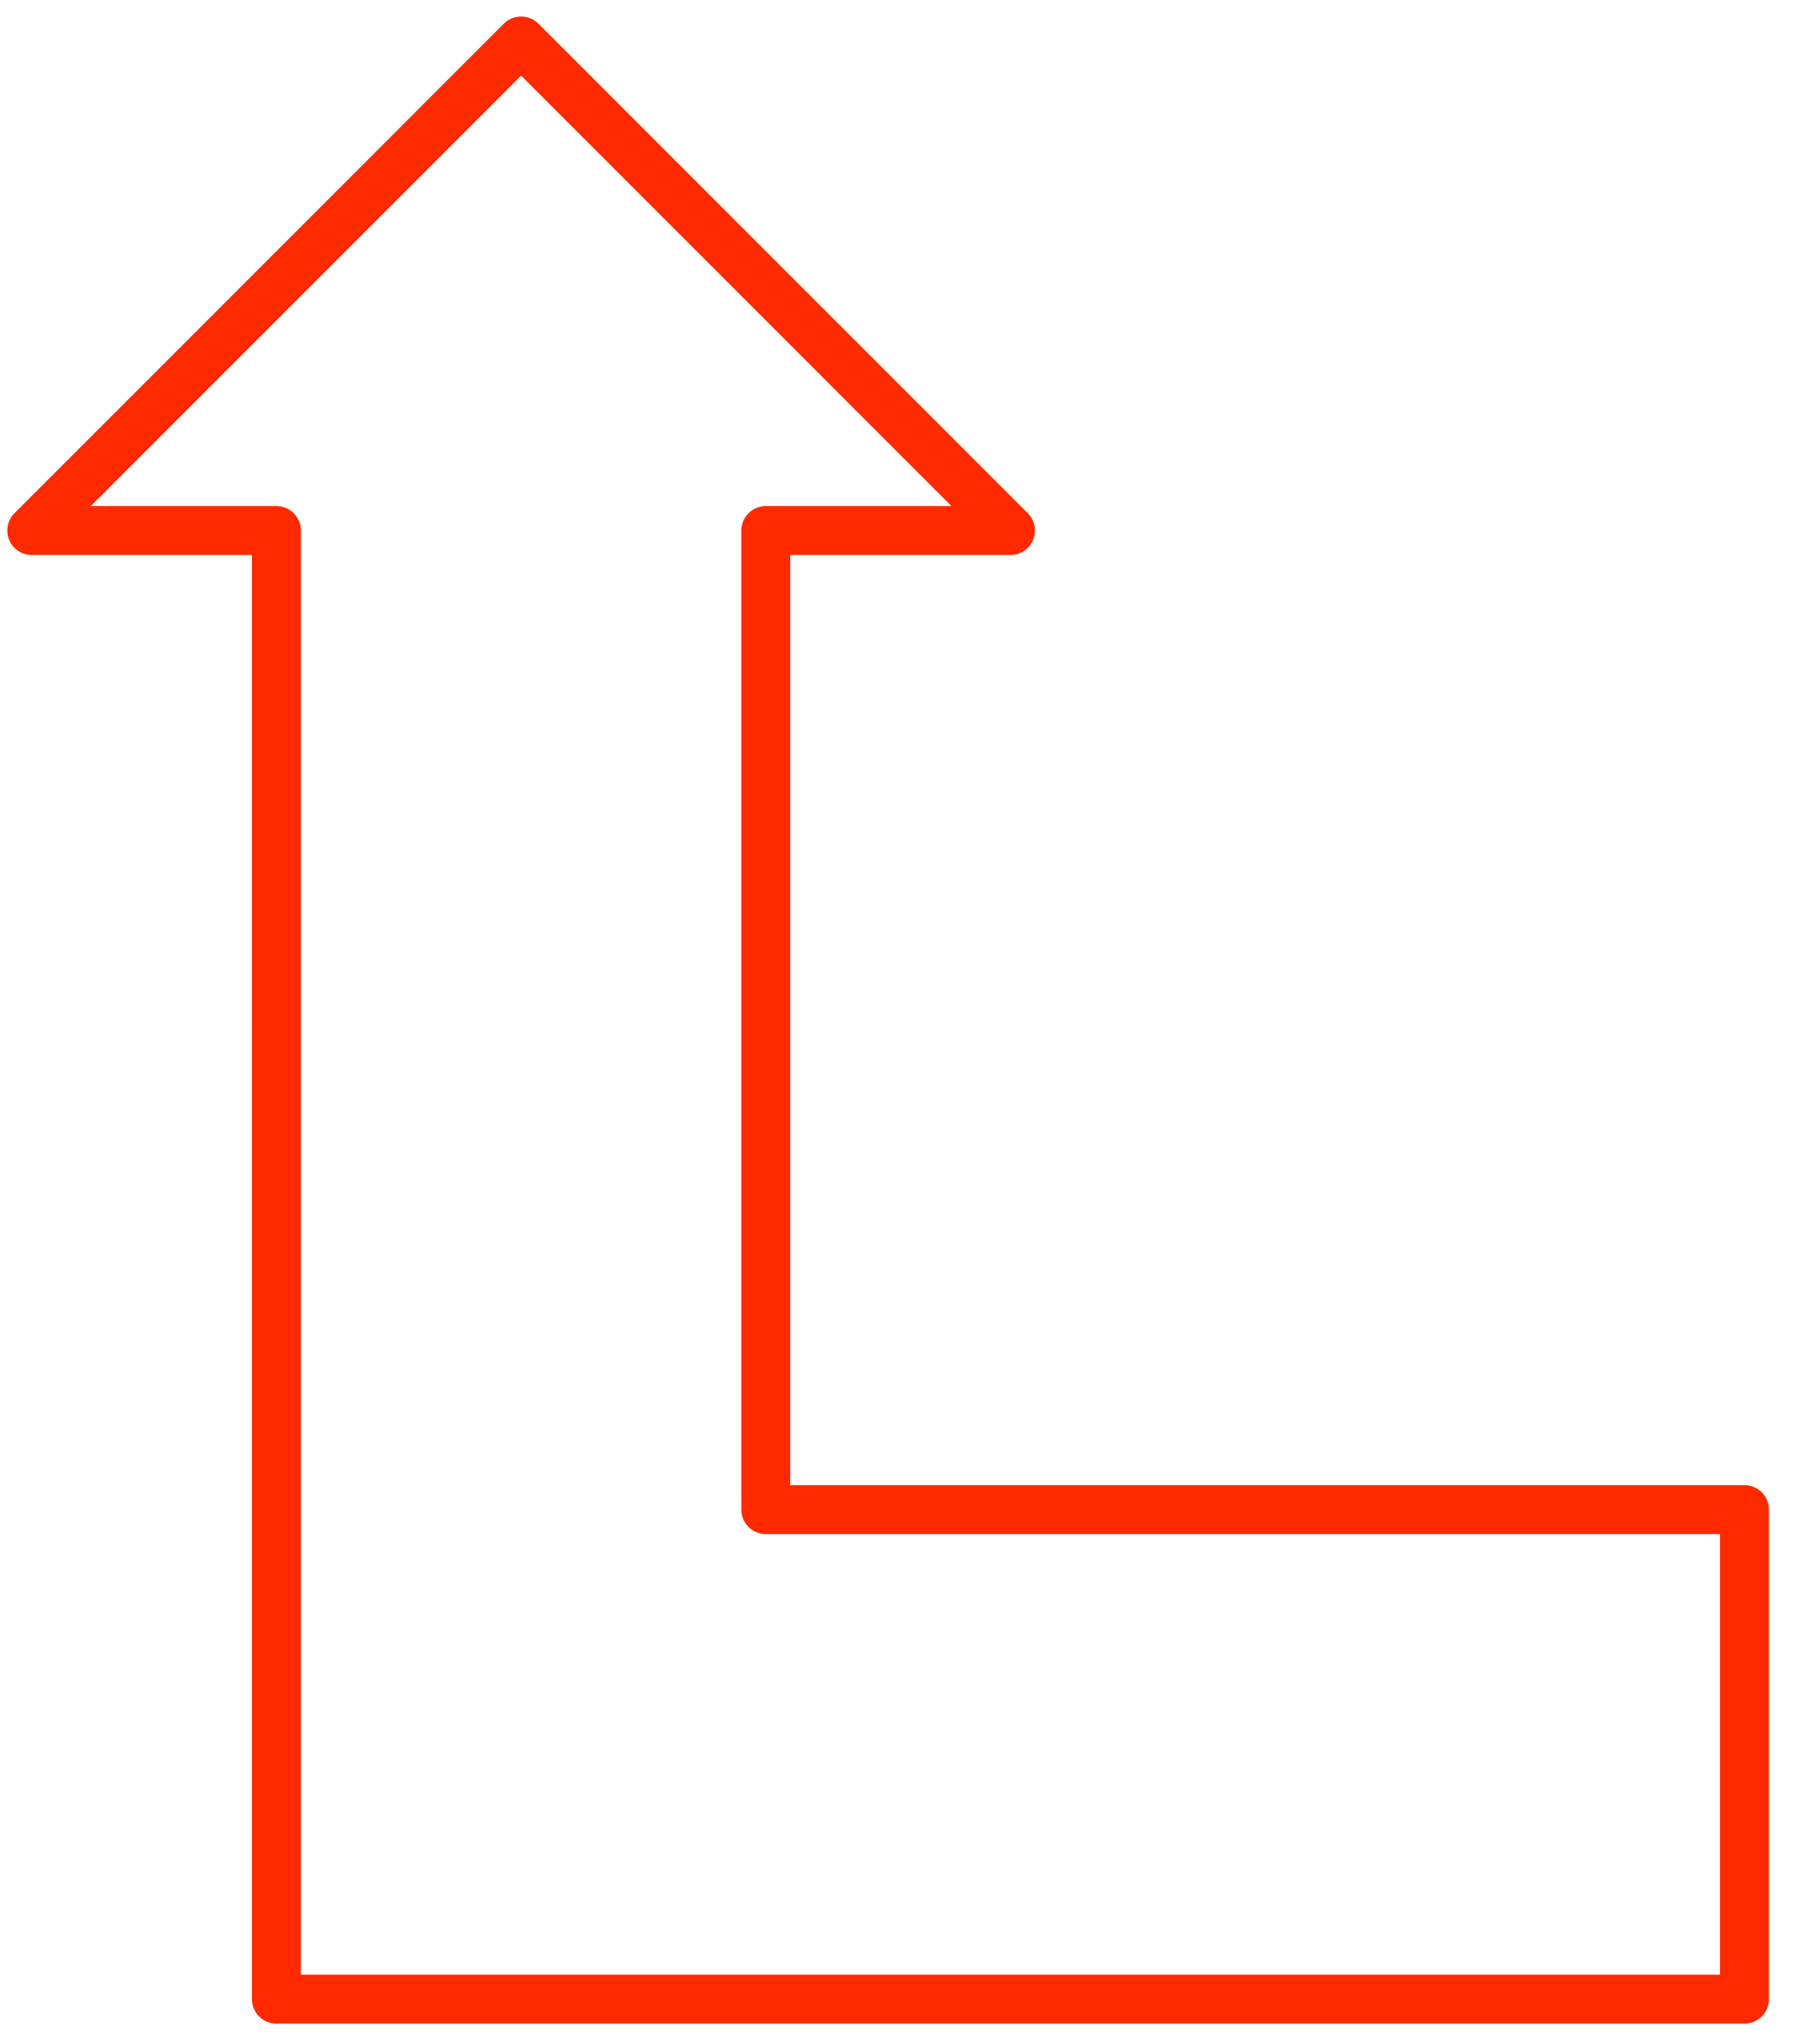 L-shaped arrow set 2 by Anonymous